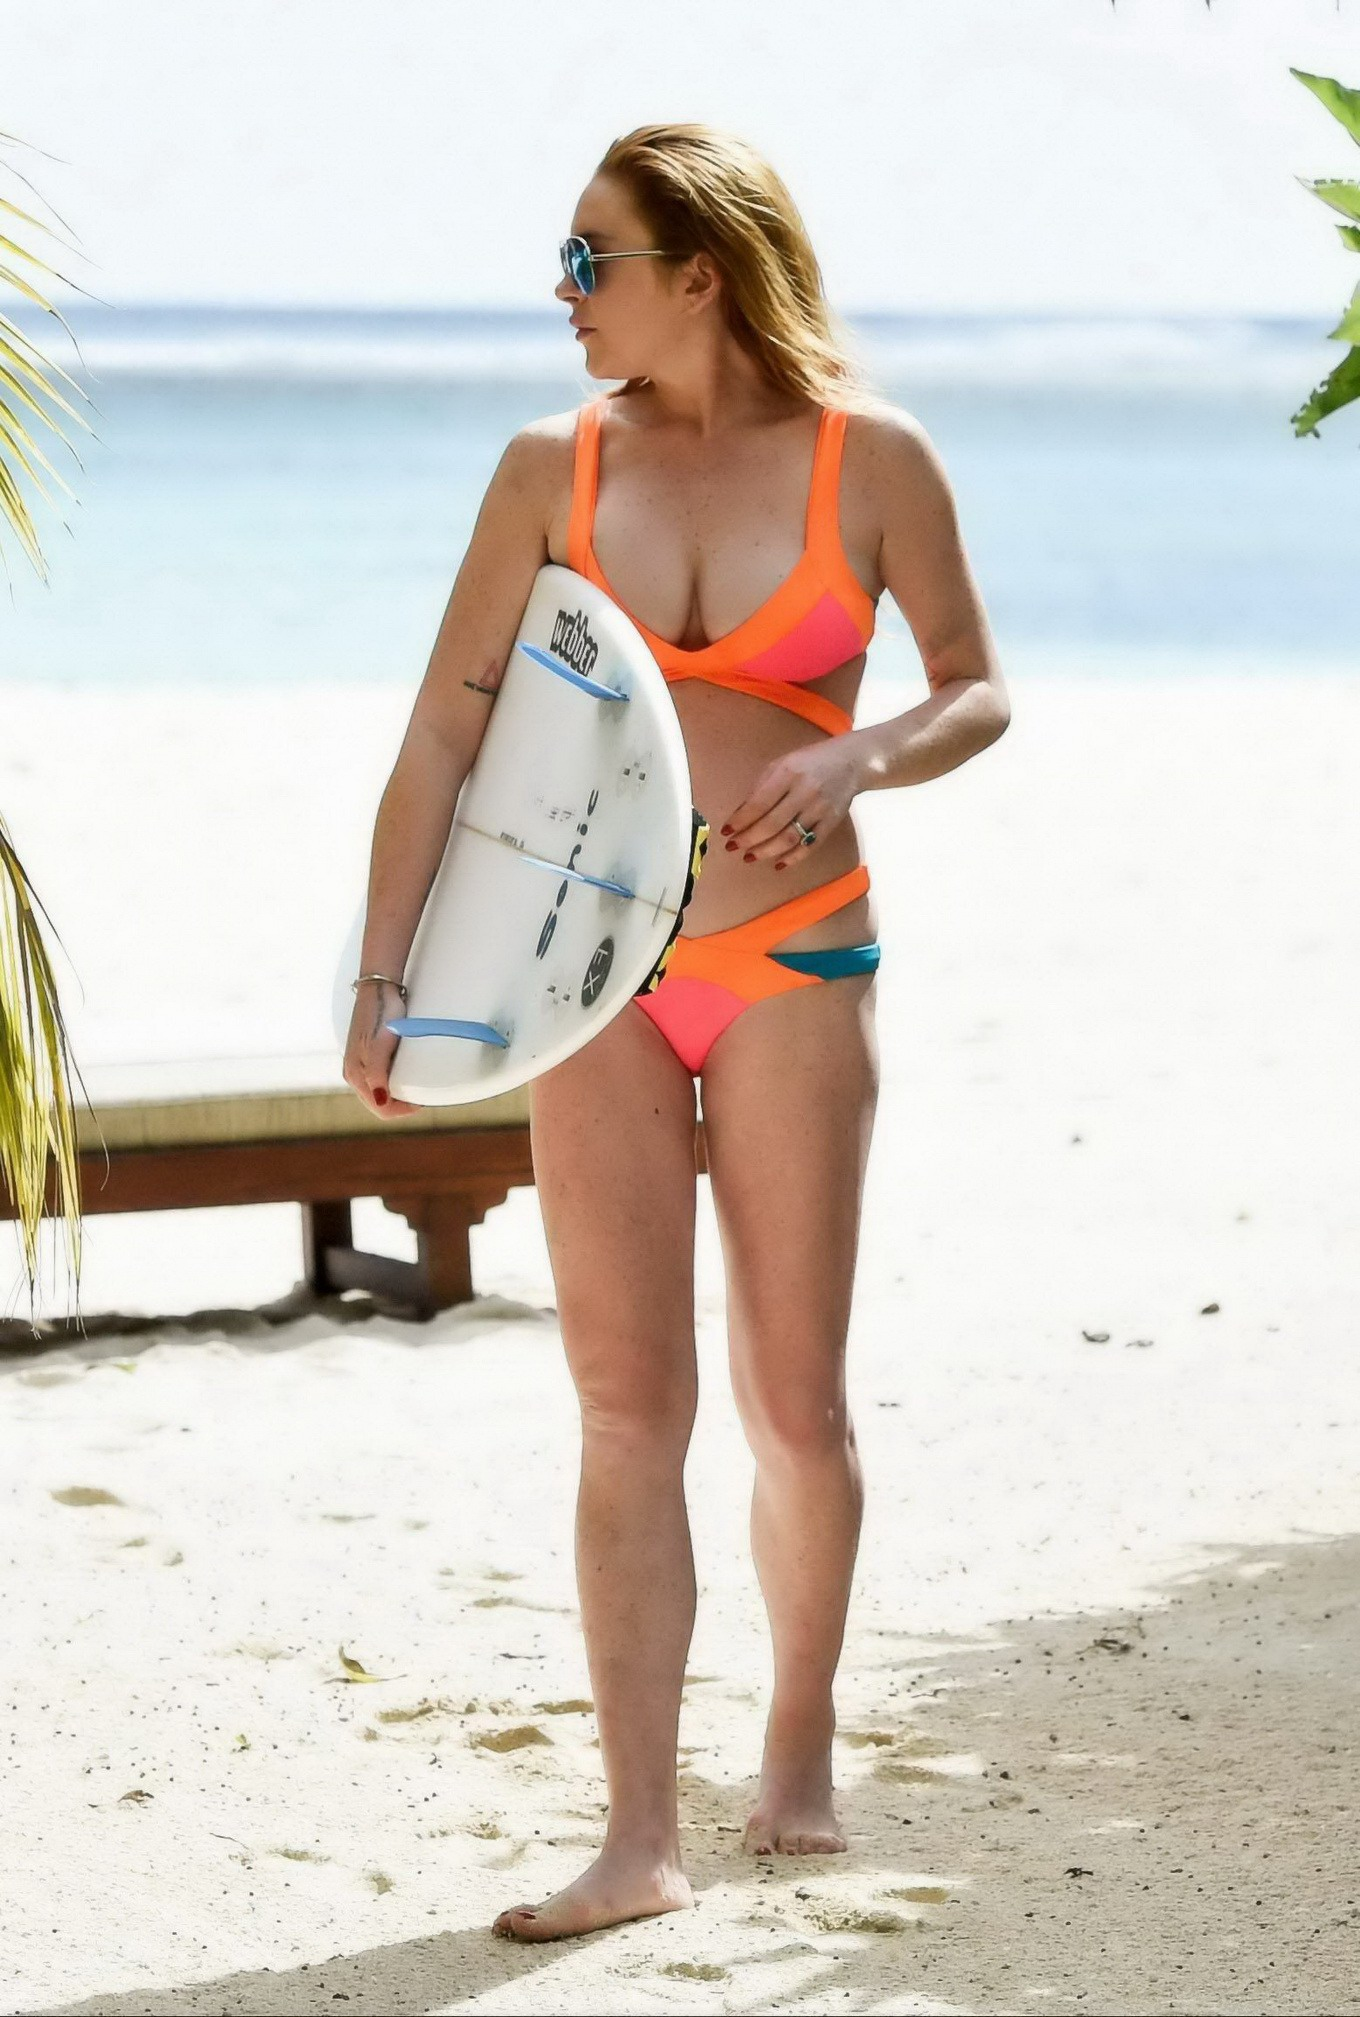 lindsay lohan displaying her hot bikini body during a vacation in